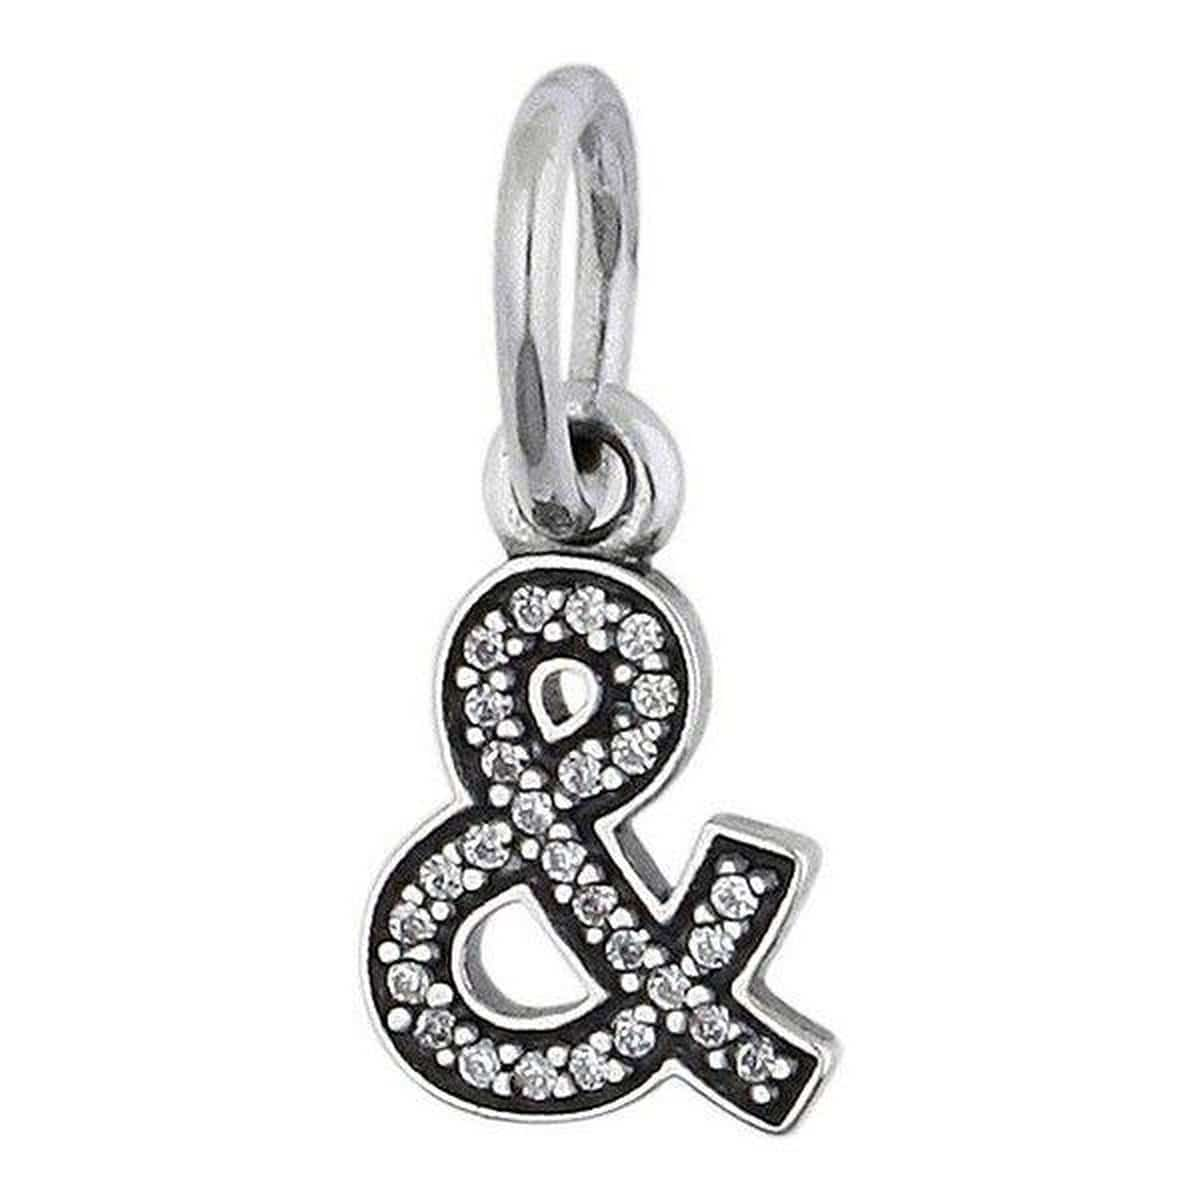 Ampersand Clear Cubic Zirconia Charm - 791305CZ-Pandora-Renee Taylor Gallery